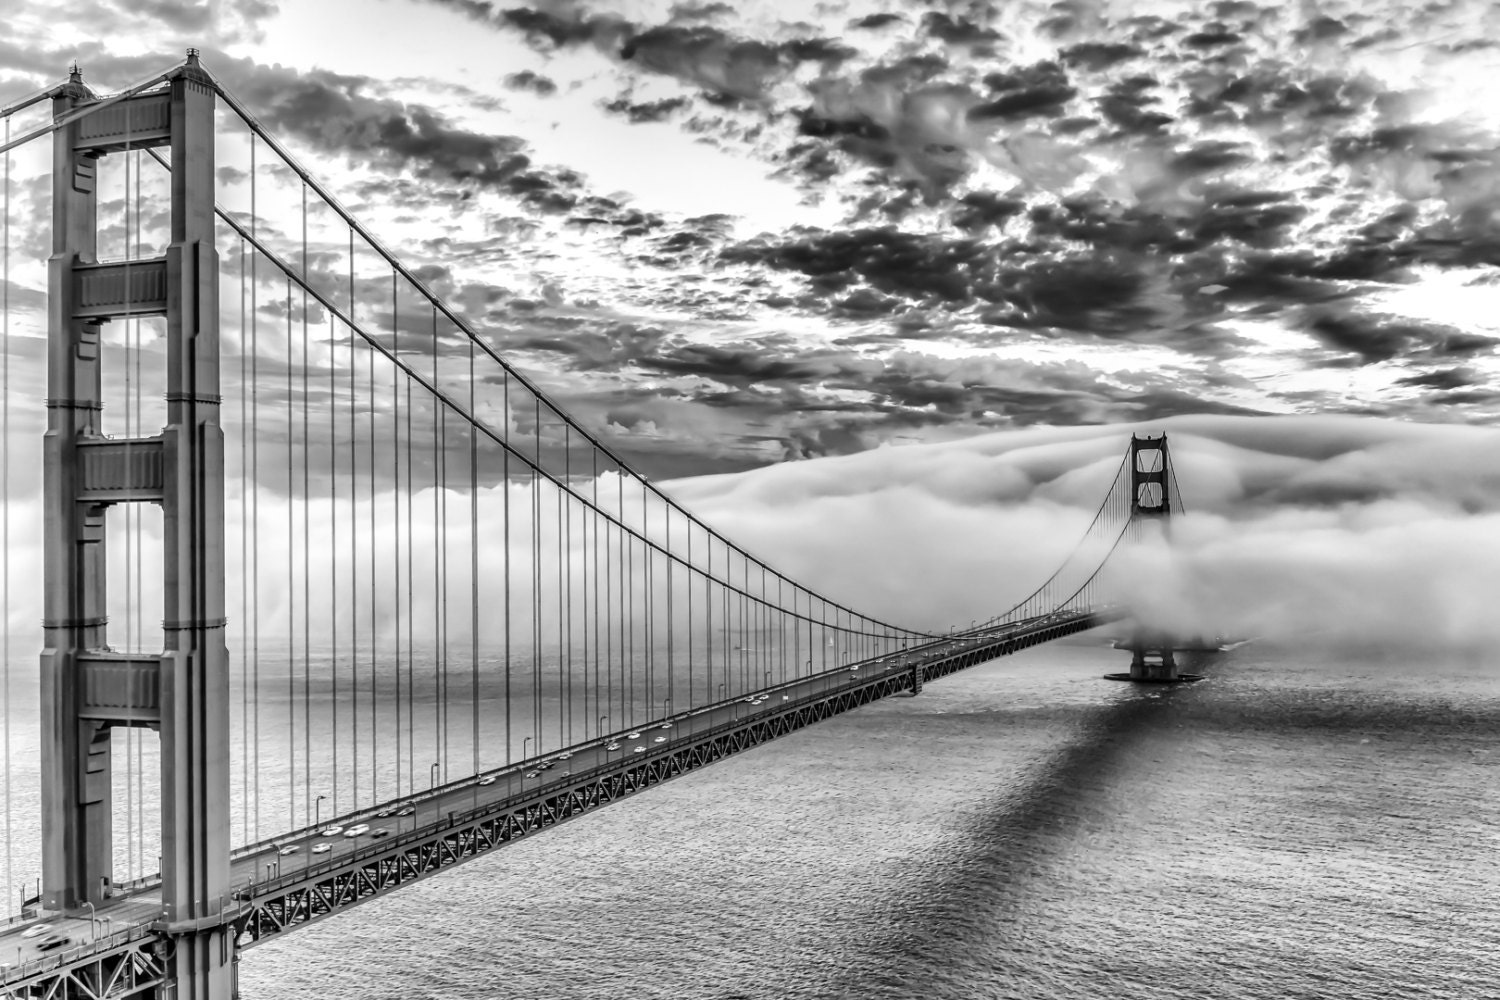 Printable coloring pages golden gate bridge - Black And White San Francisco Print Art Black And White Romantic Golden Gate Bridge Photography Beautiful Sunset Picture In Monochrome